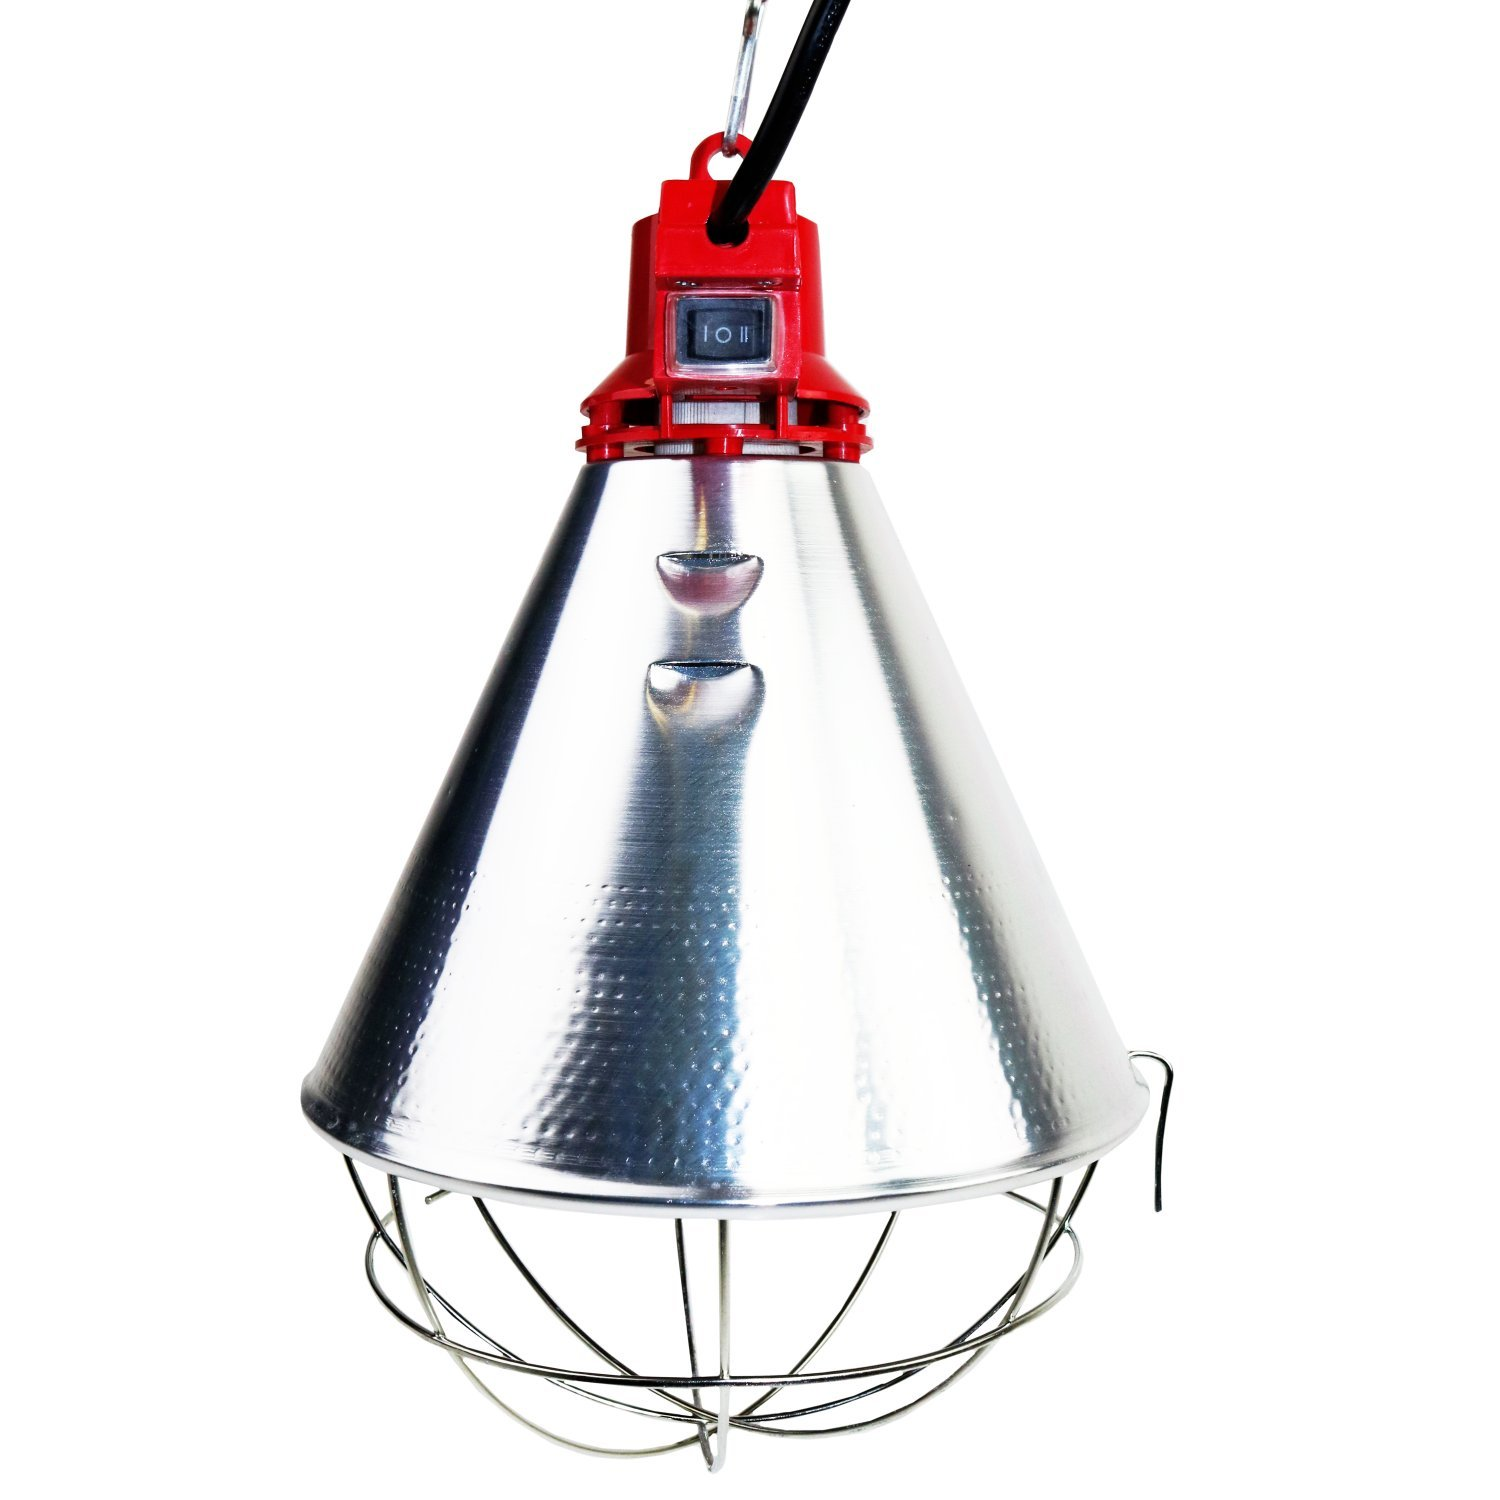 Poultry Heat Incubator Lamp 250w W Red Bulb For Chicks Puppies 163 29 99 Oypla Stocking The